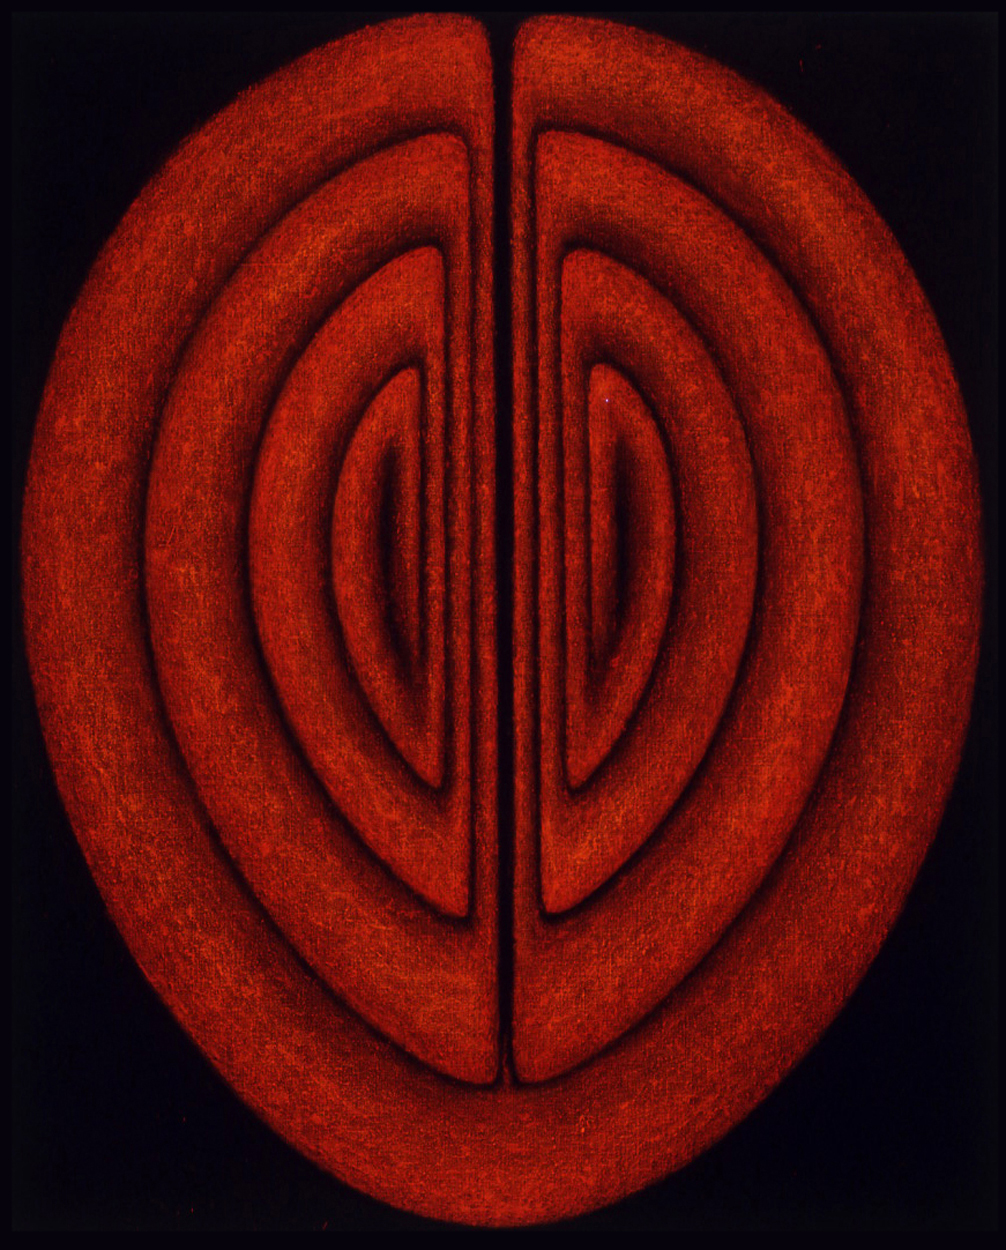 <i>Icons and Emblems Series: Silent Sound No. III</i>; 1995;